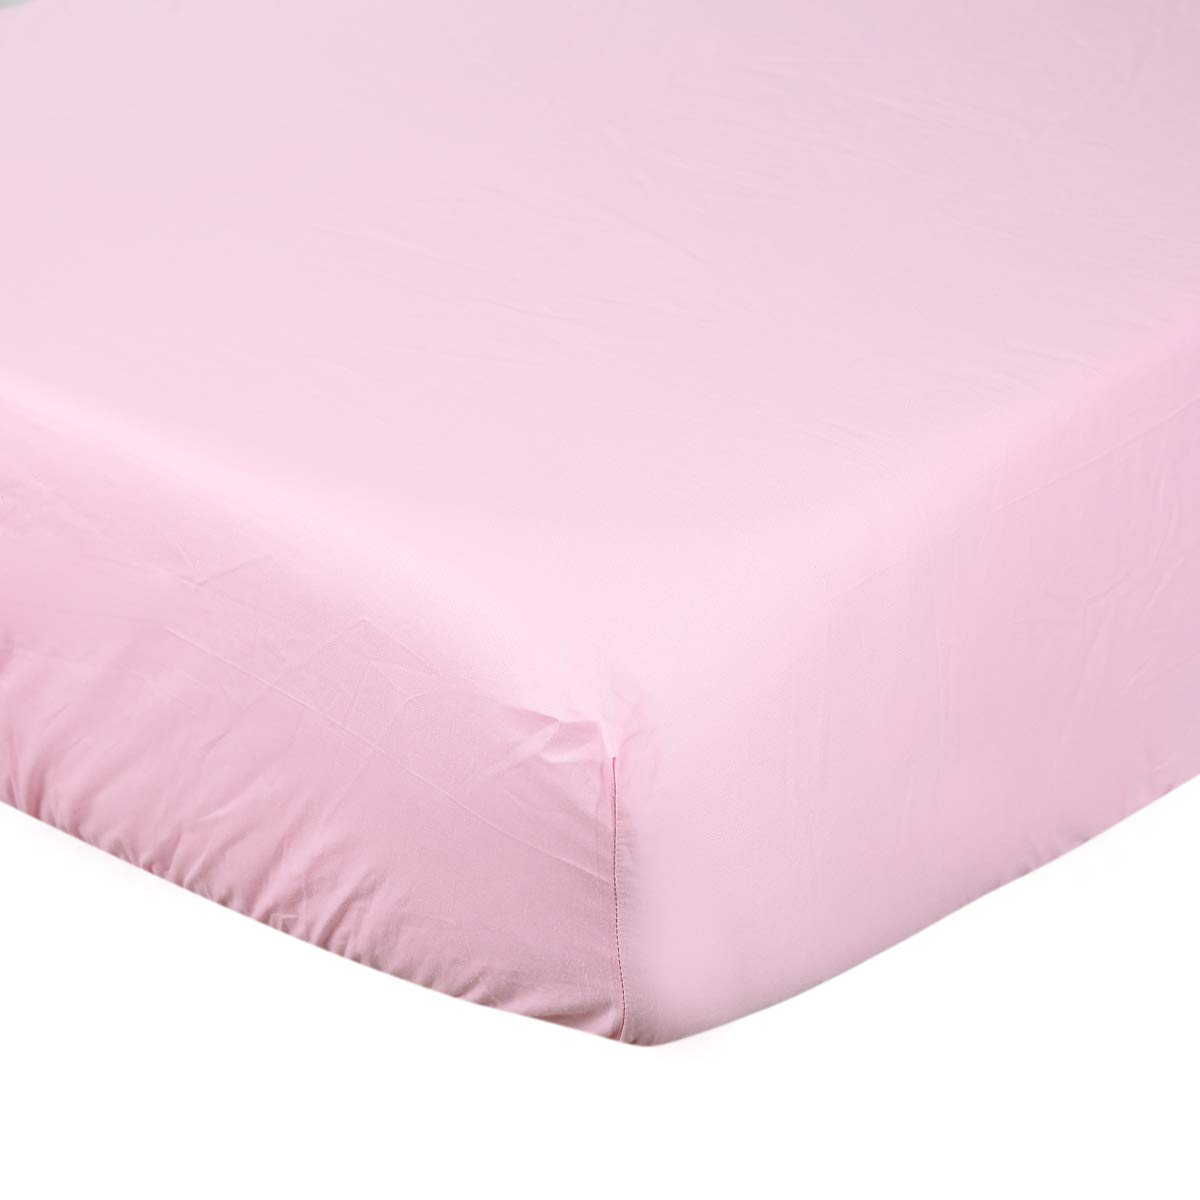 UOMNY Crib Sheet 100% Cotton Crib Fitted Sheets Baby Sheet Standard Crib Toddler Sheet 28 x 52 Inch for Boys and Girls 1 Pack Solid Color Toddler Sheet Pink Crib Sheet